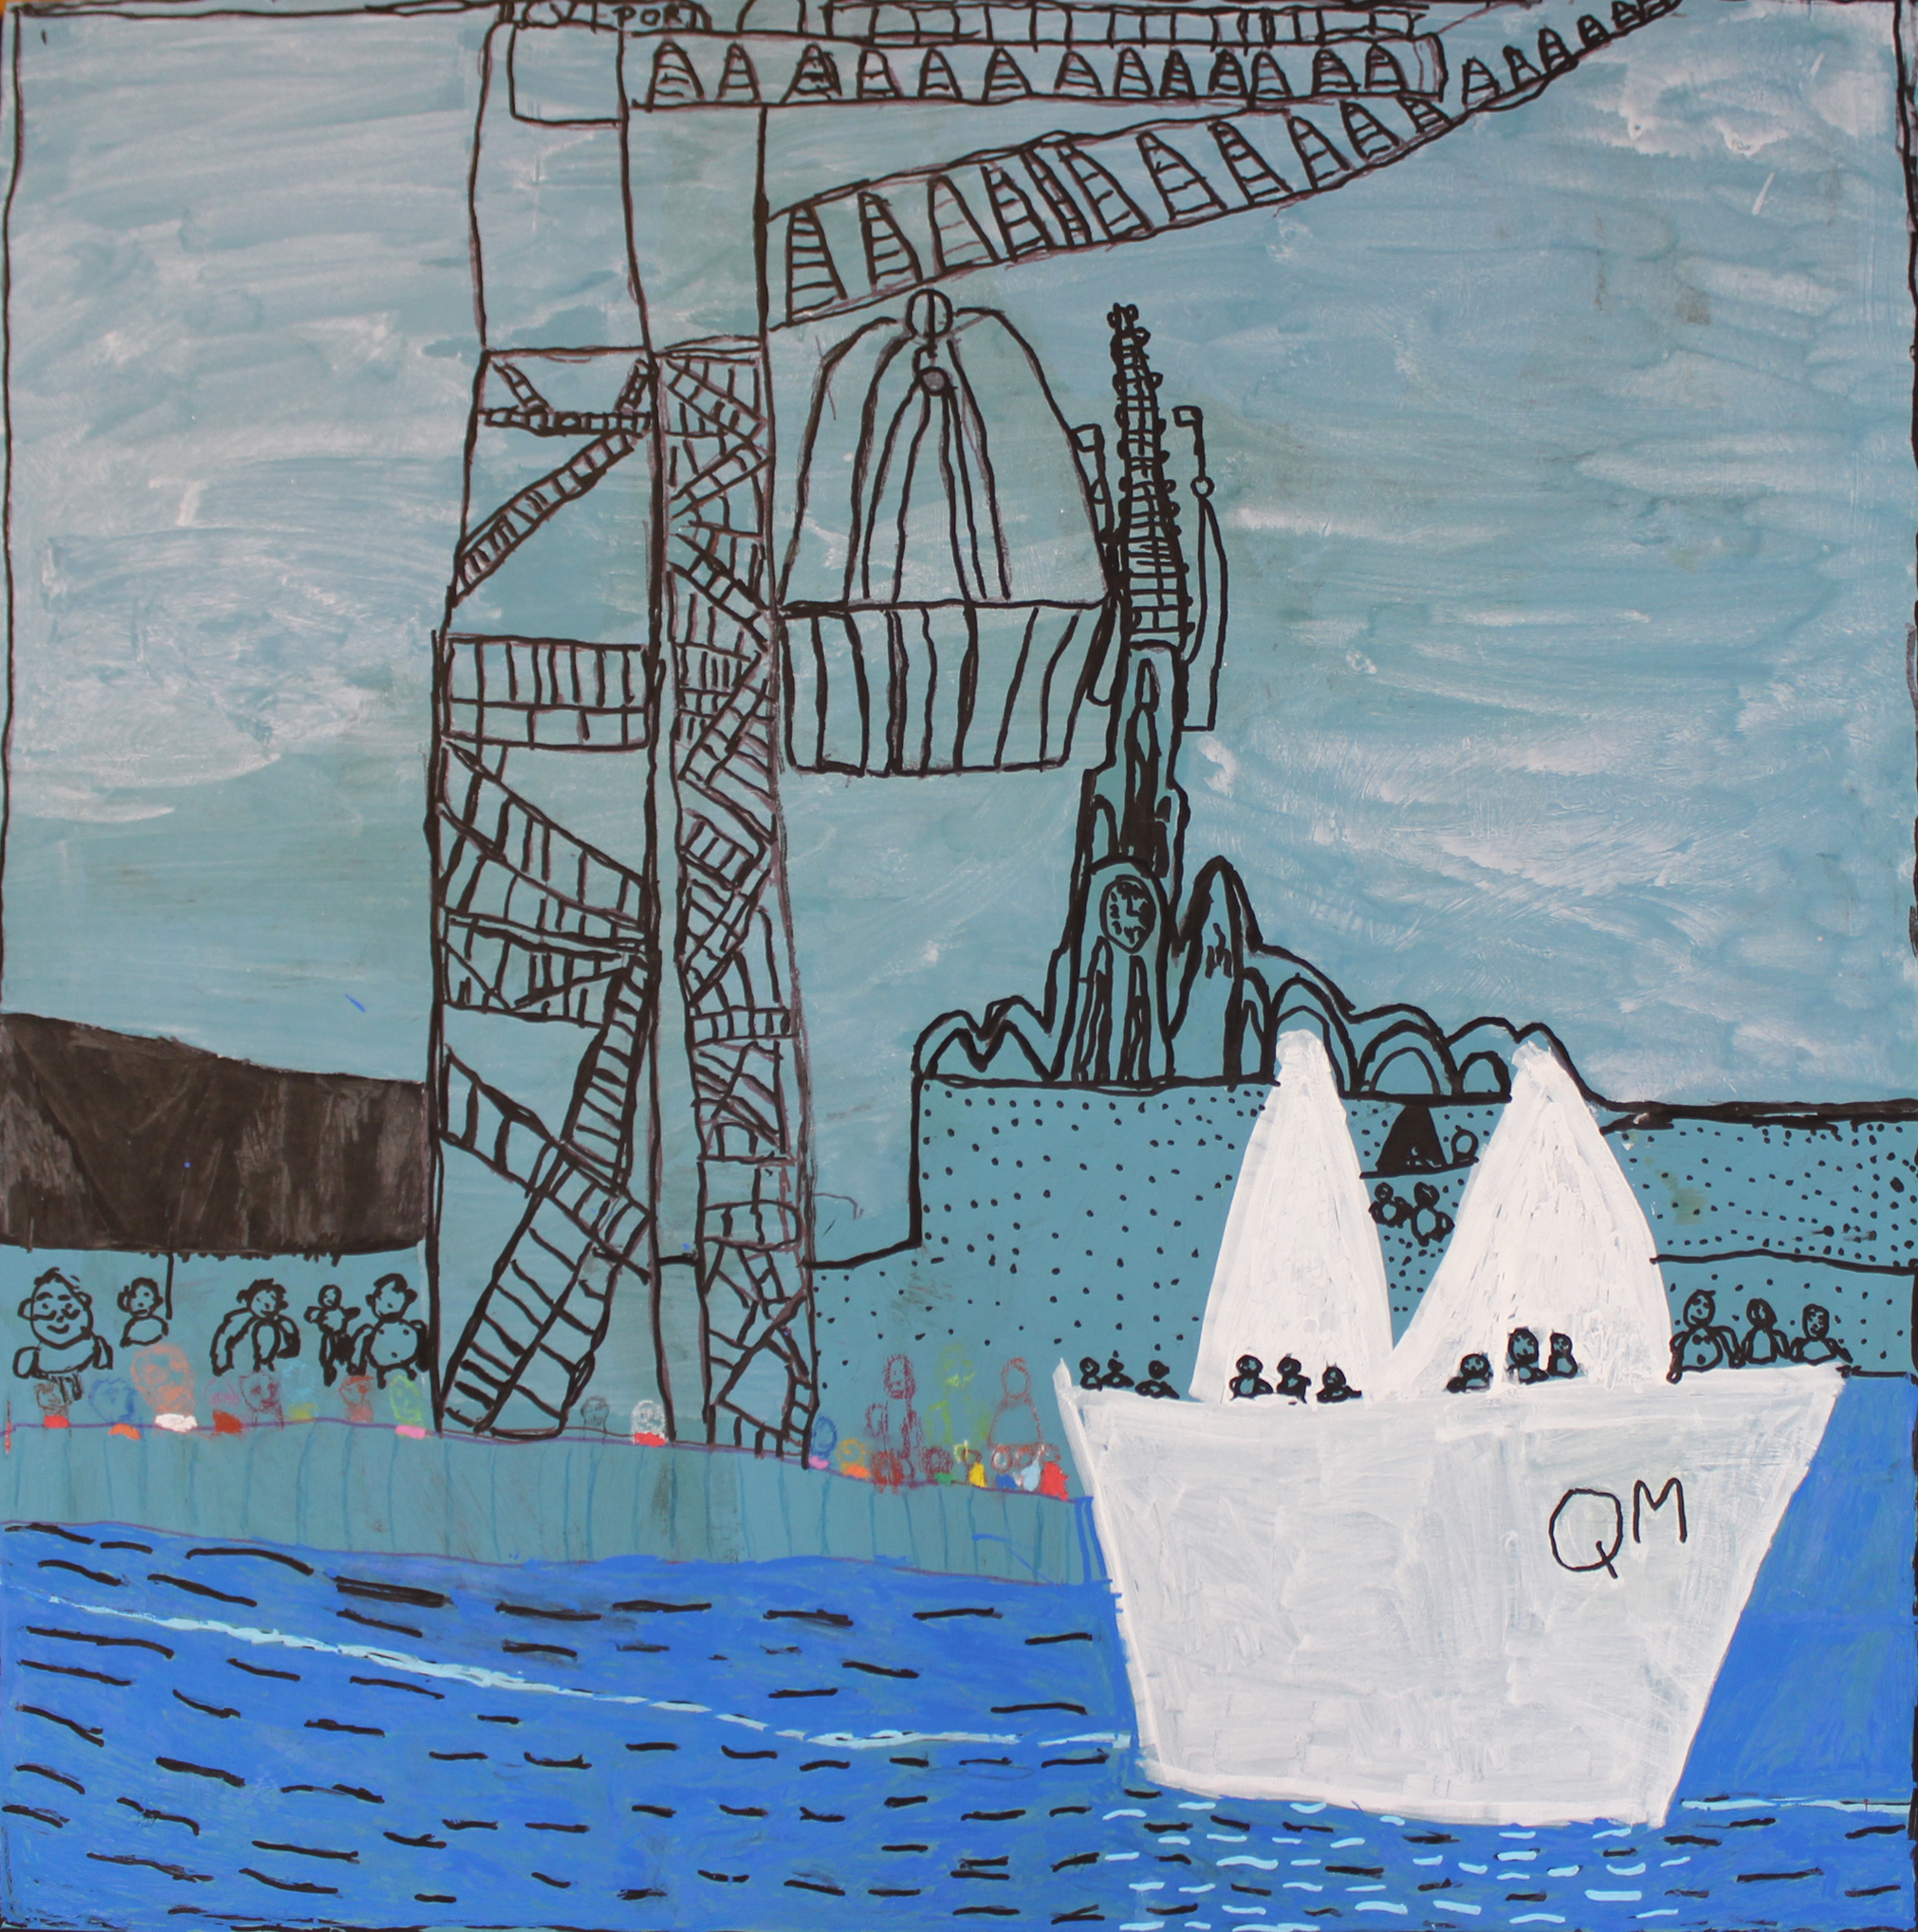 Wyllie's Paper Boat' by Michael McMullen